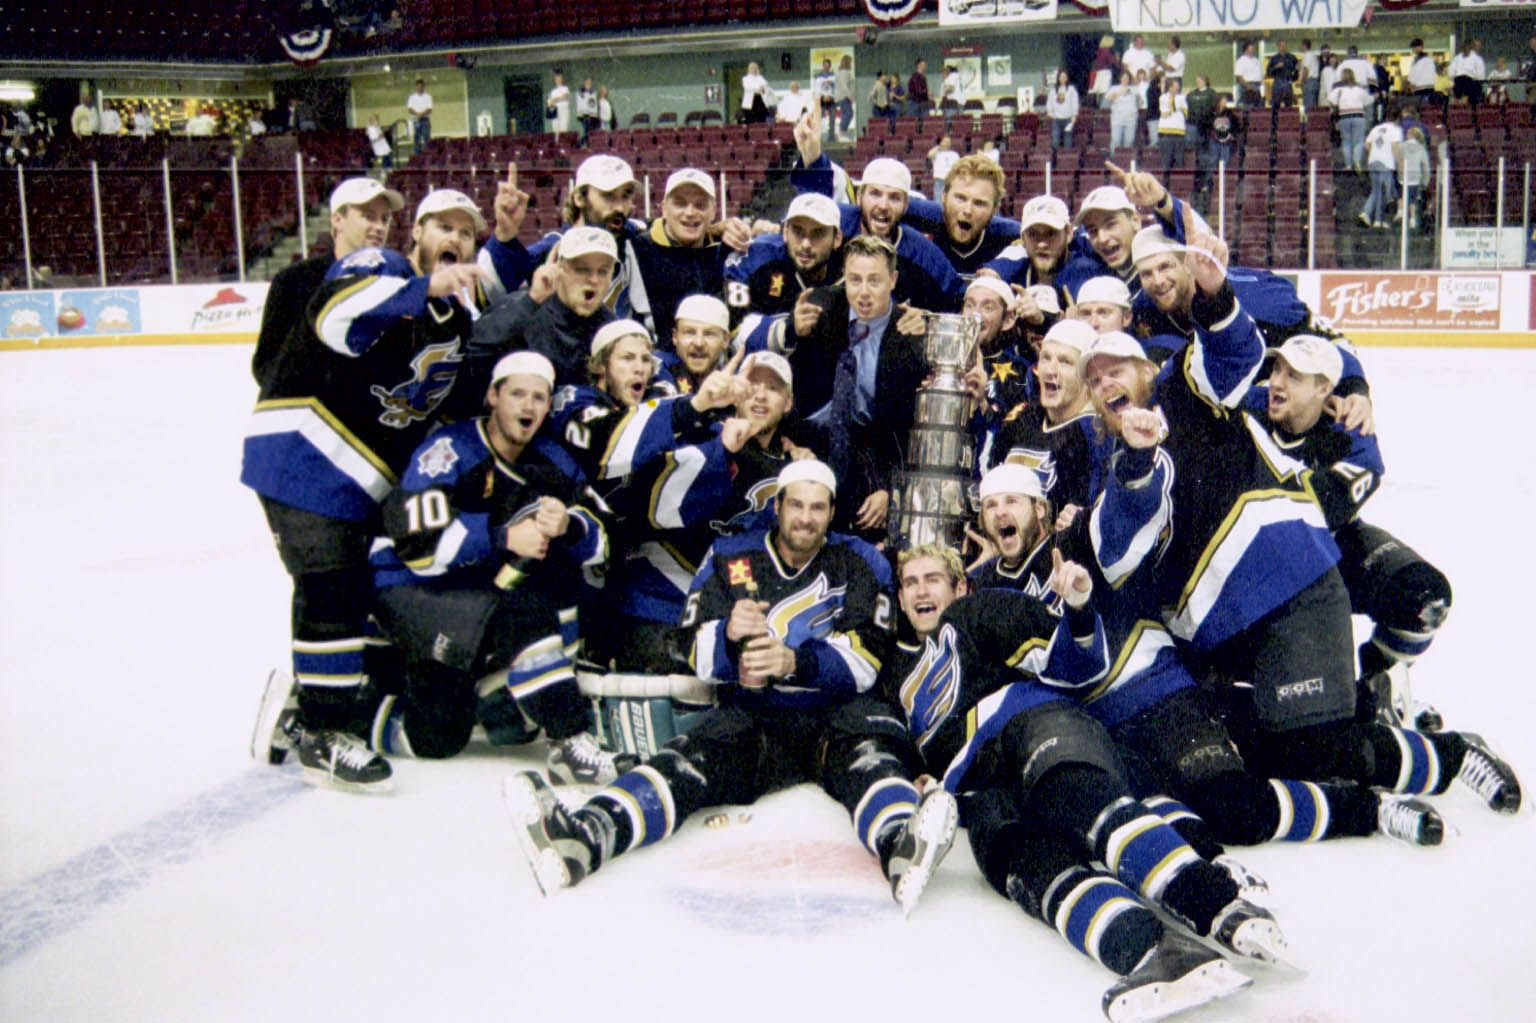 2002 Wchl Taylor Cup Champion Fresno Falcons Sports Team Champion Athlete